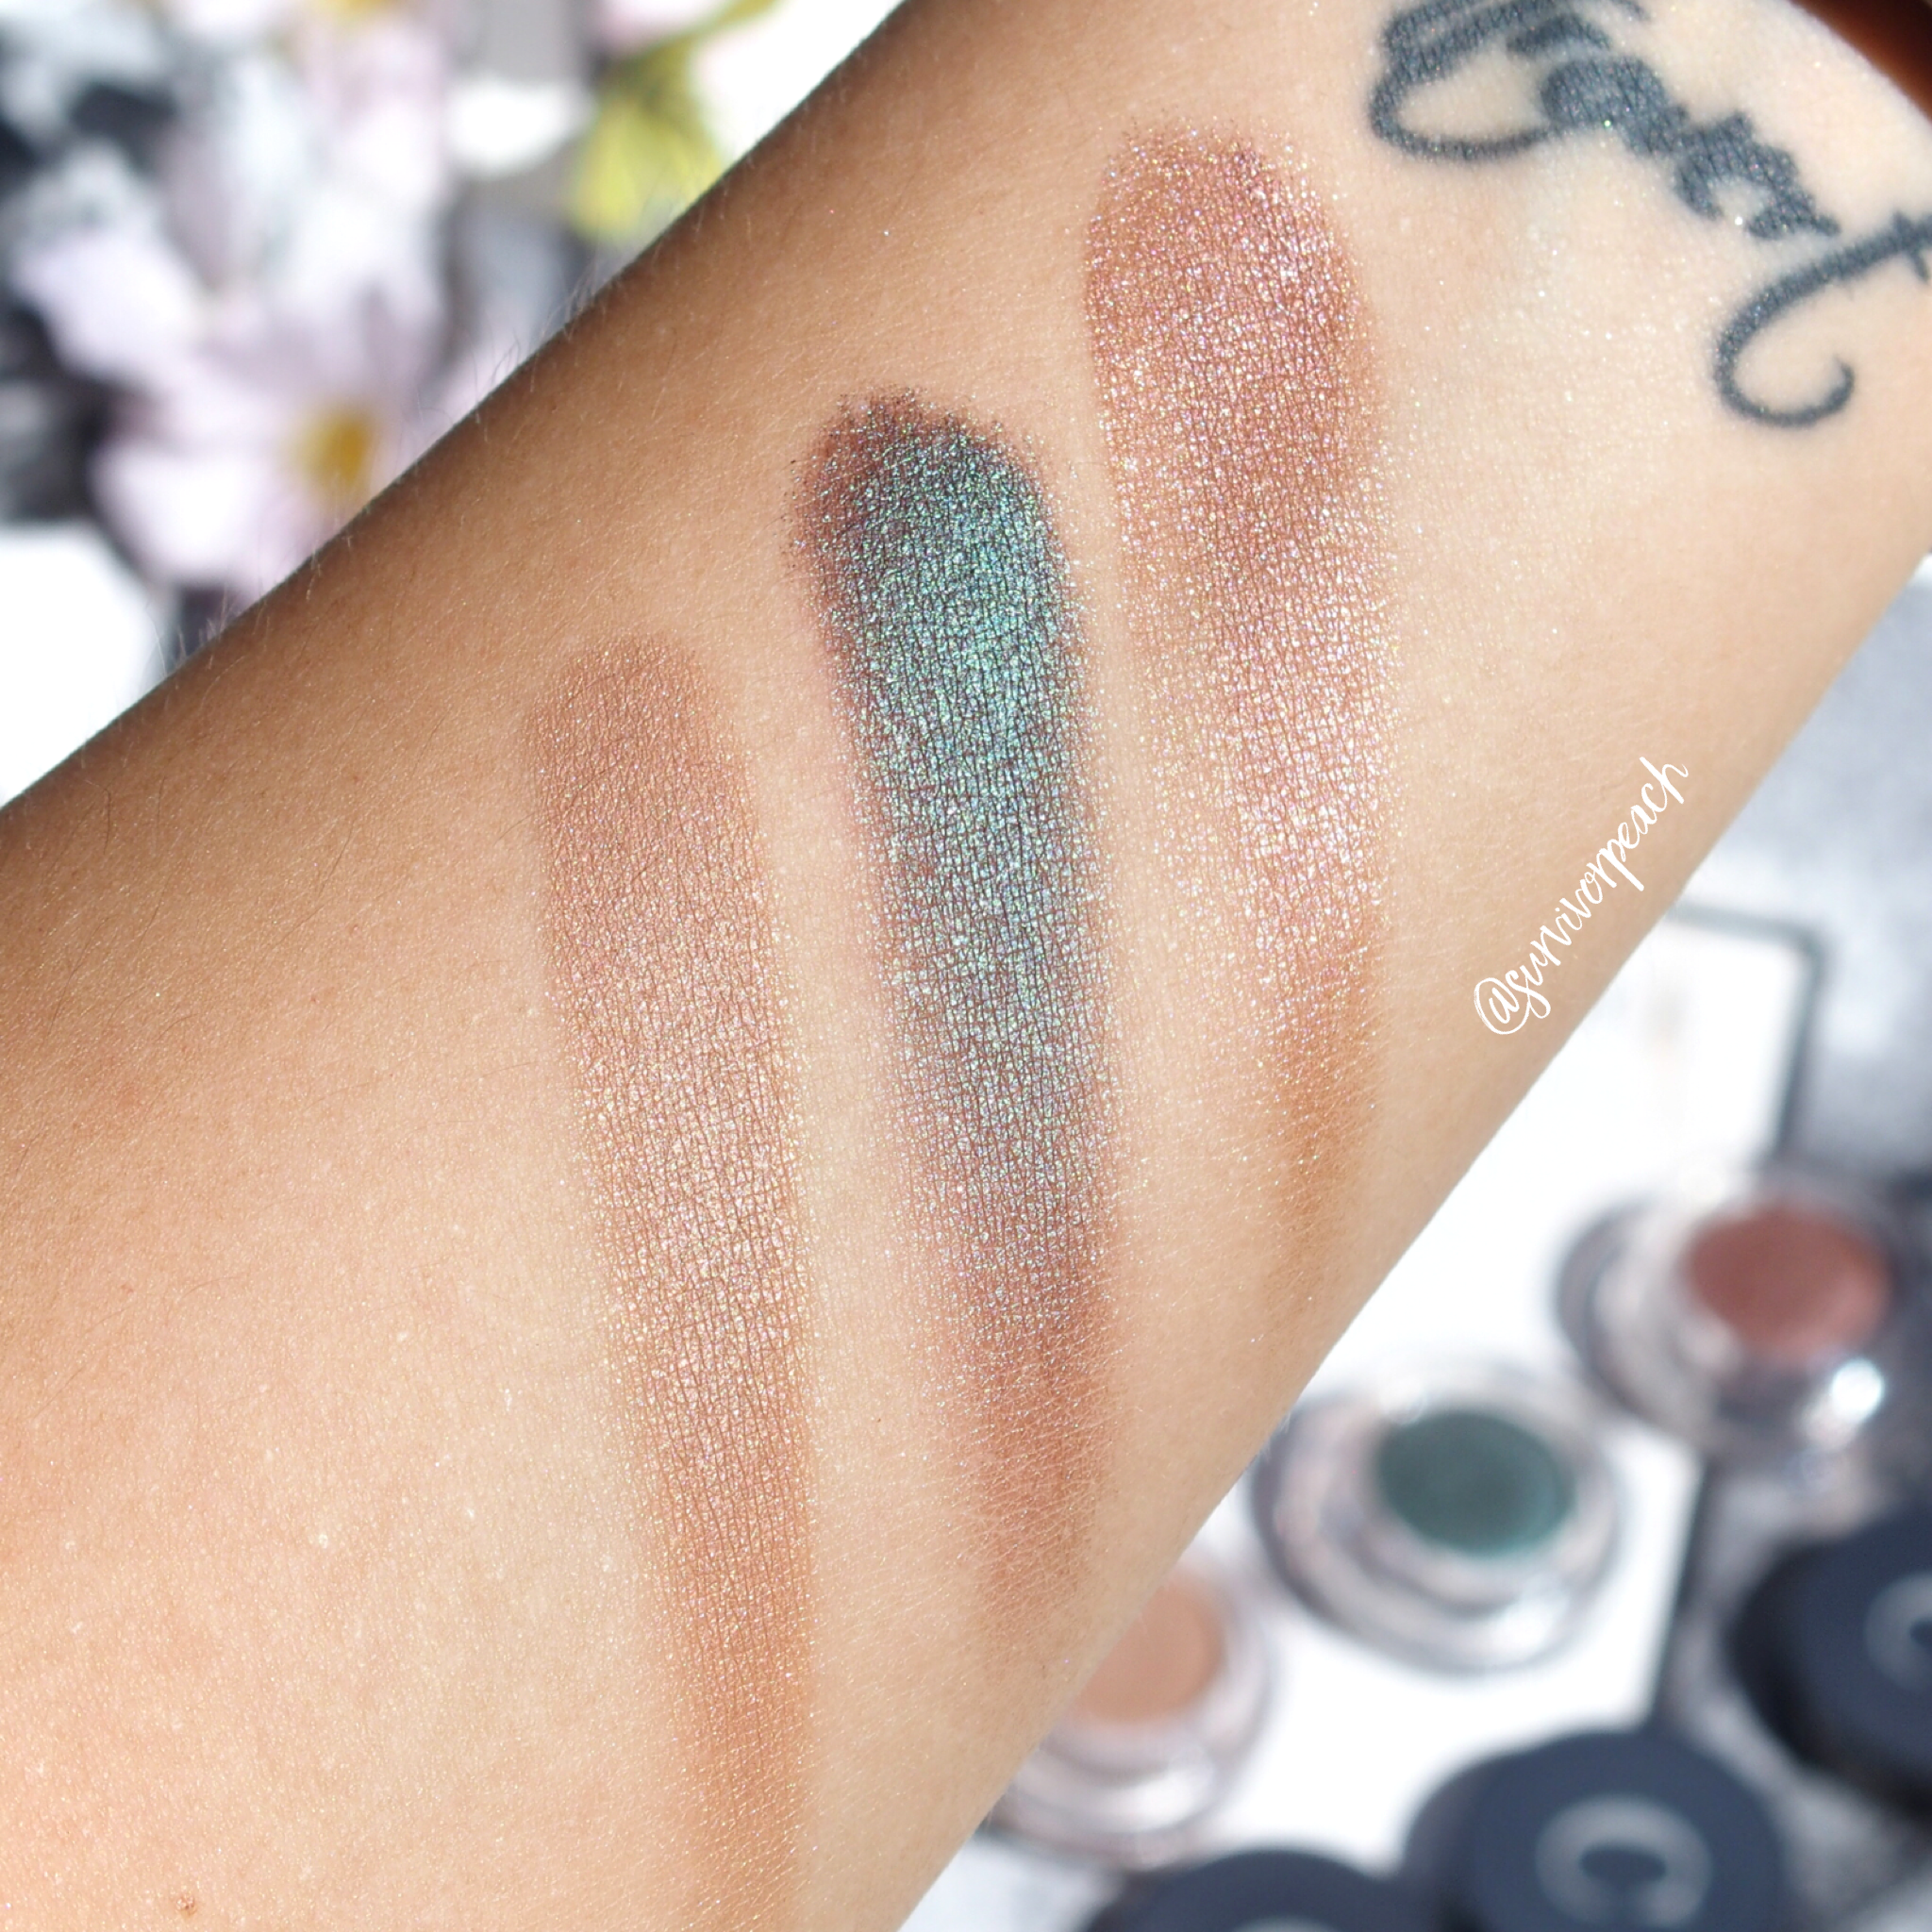 Swatches of the Chantecaille Mermaid Eye Shades in Starfish, Lagoon, and Sylvie.